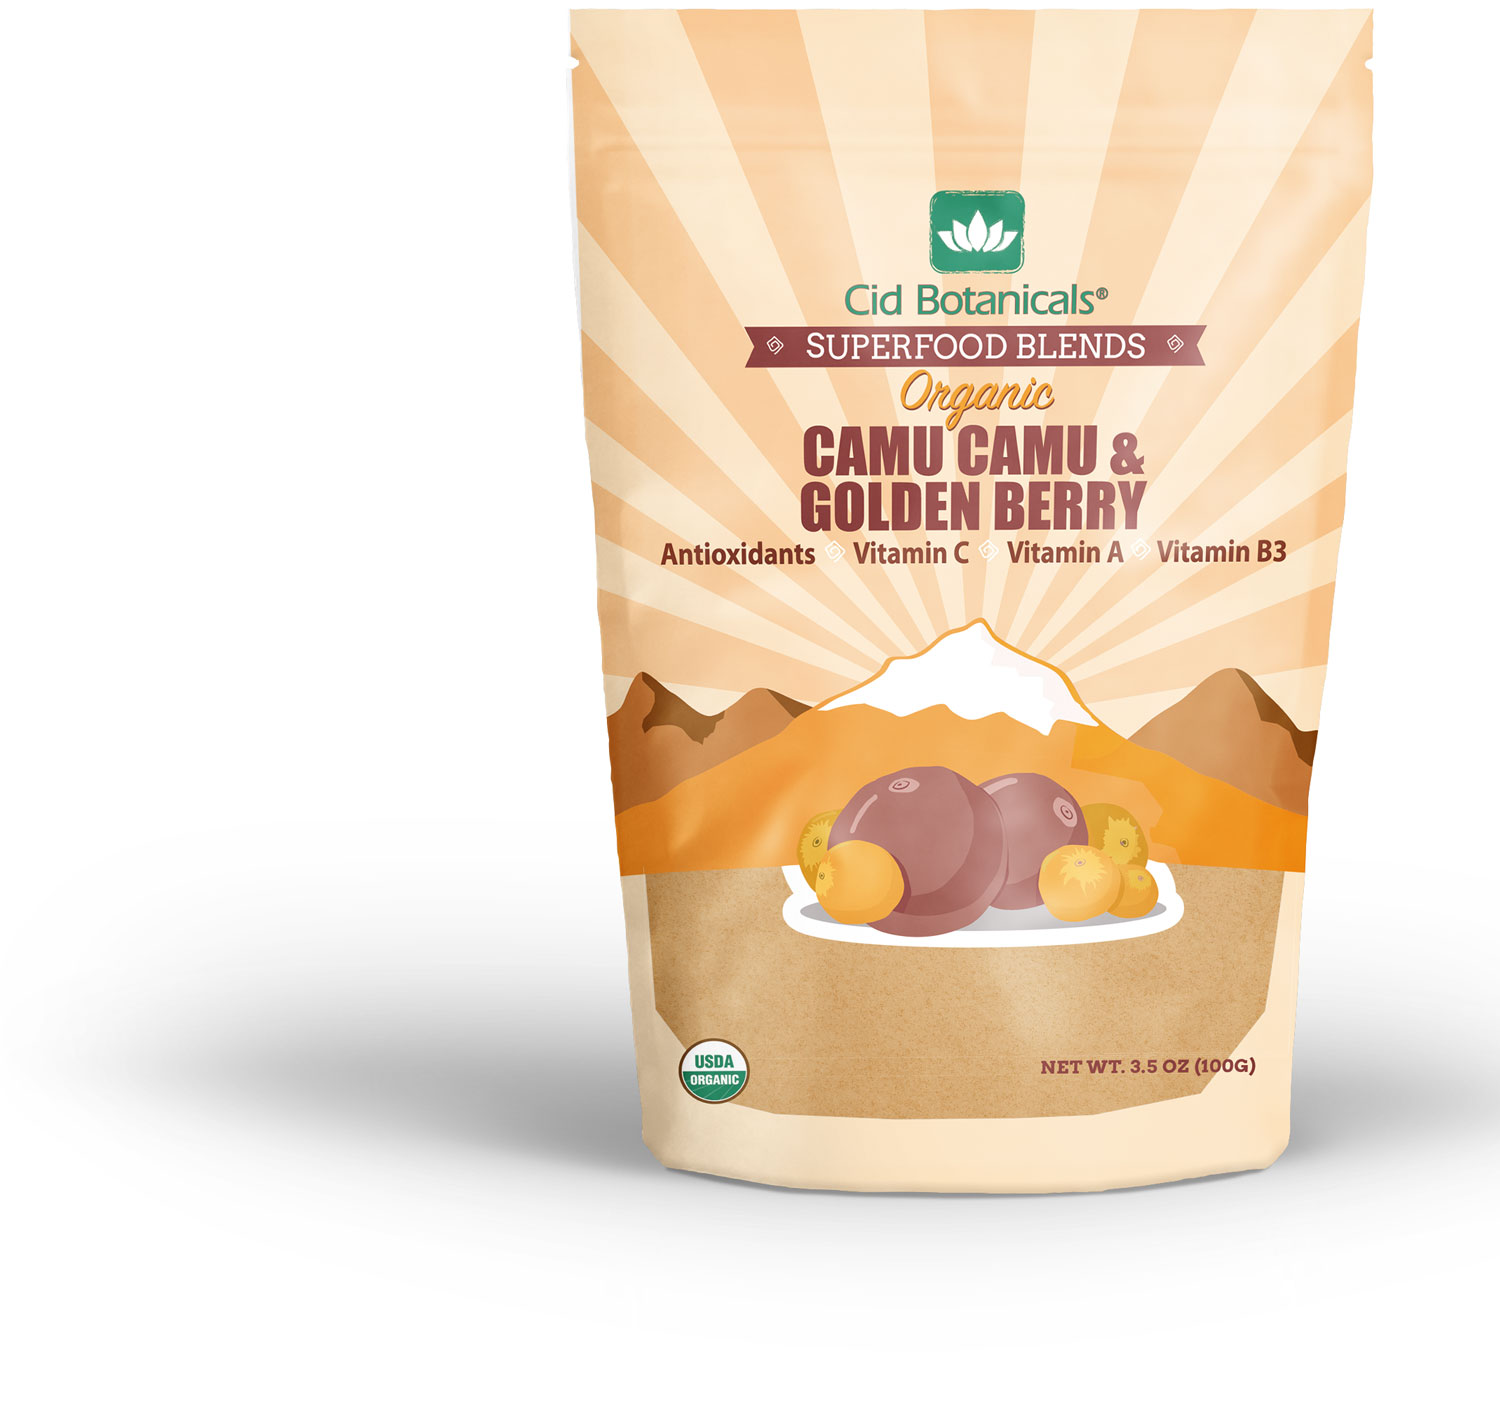 Cid Botanicals Superfood Blends: Camu Camu & Incan